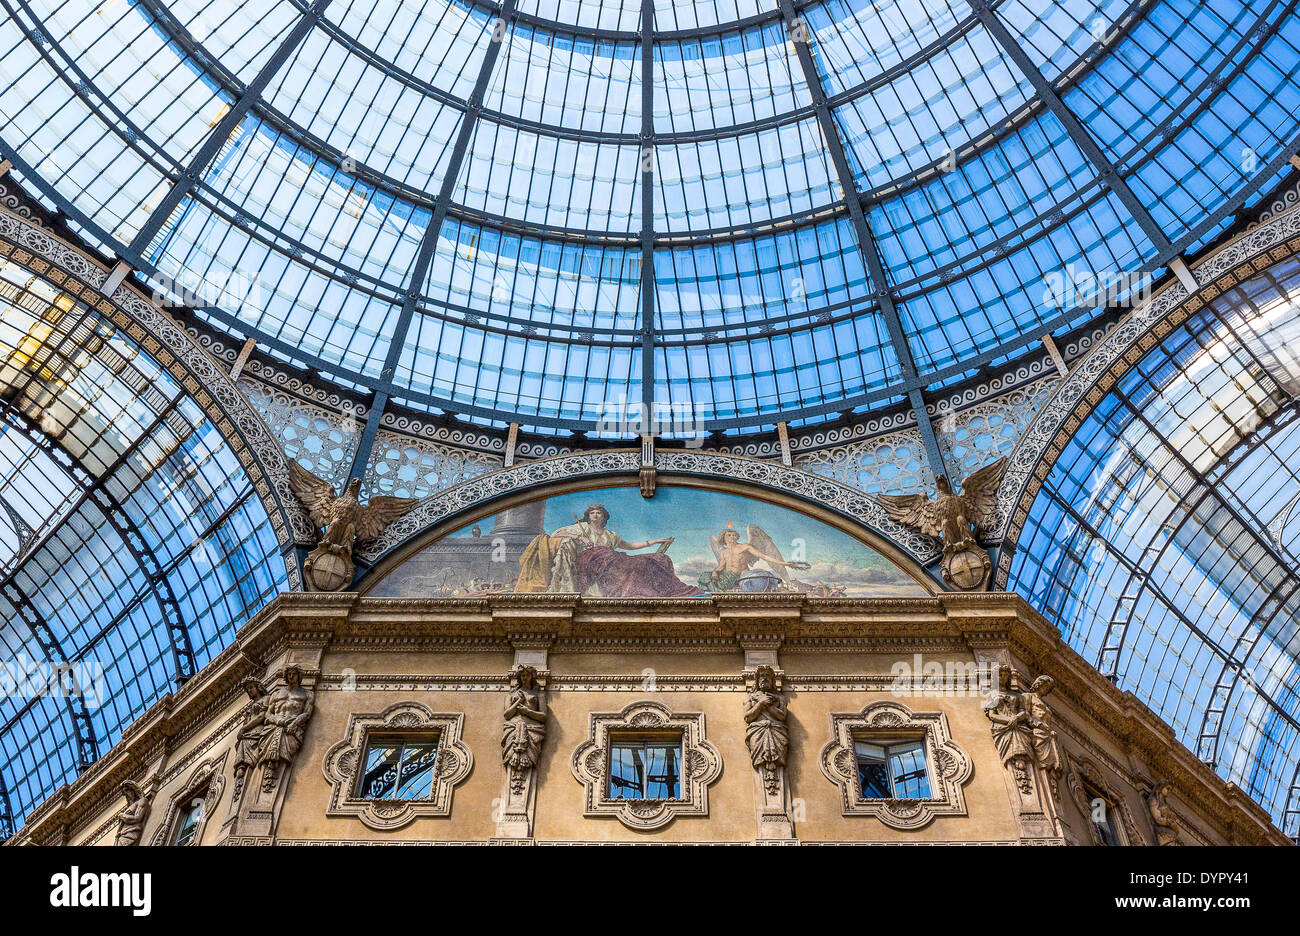 Milan, Italy. 23rd Apr, 2014. the glass roofed arcade of Vittorio Emanuele gallery Credit:  Realy Easy Star/Alamy Live News - Stock Image